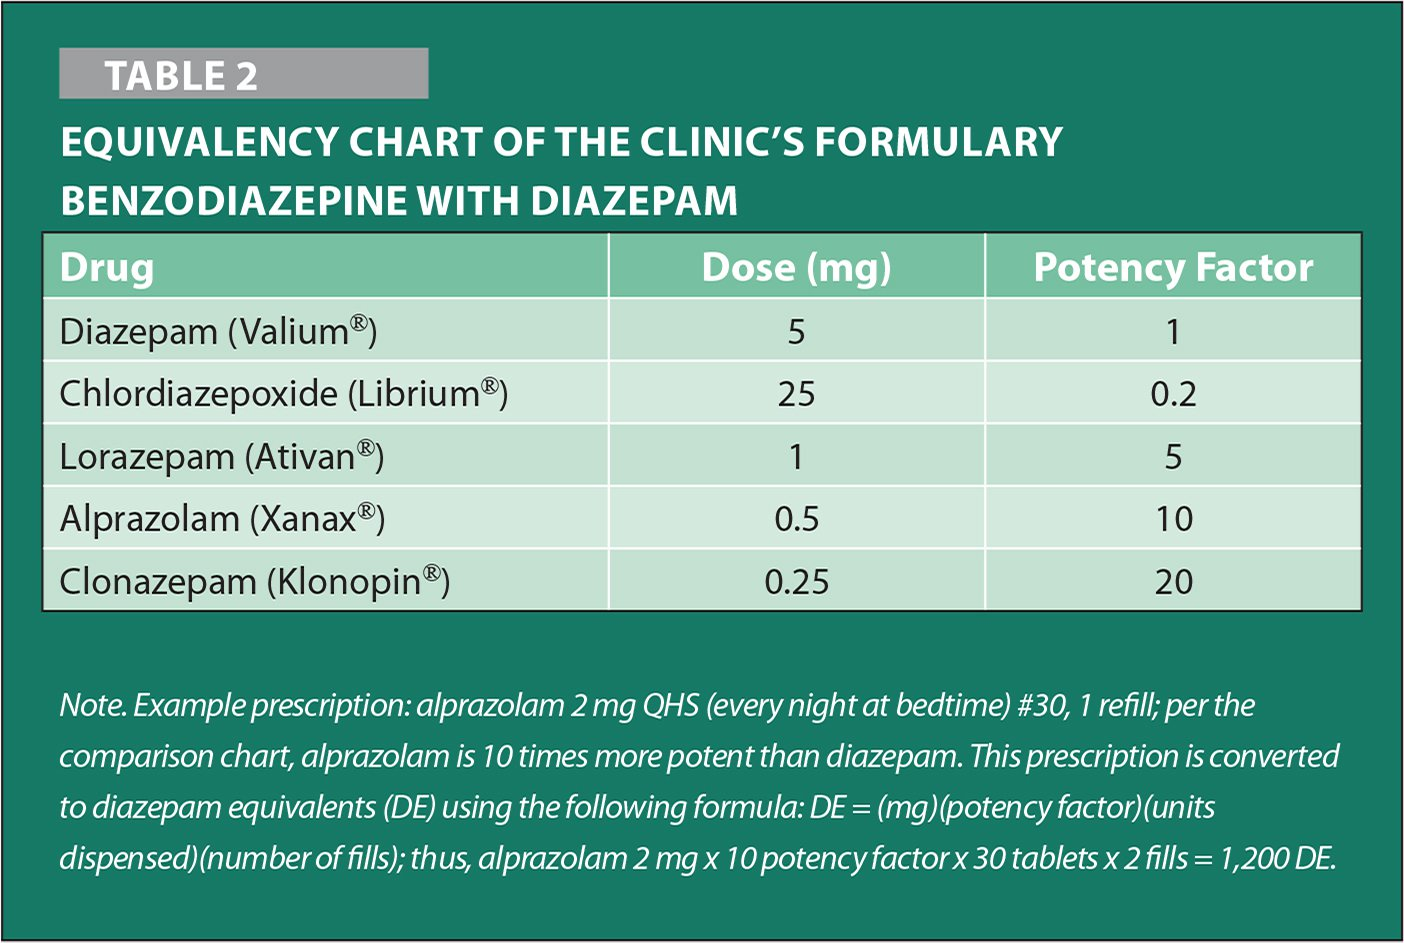 Equivalency Chart of the Clinic's Formulary Benzodiazepine with Diazepam